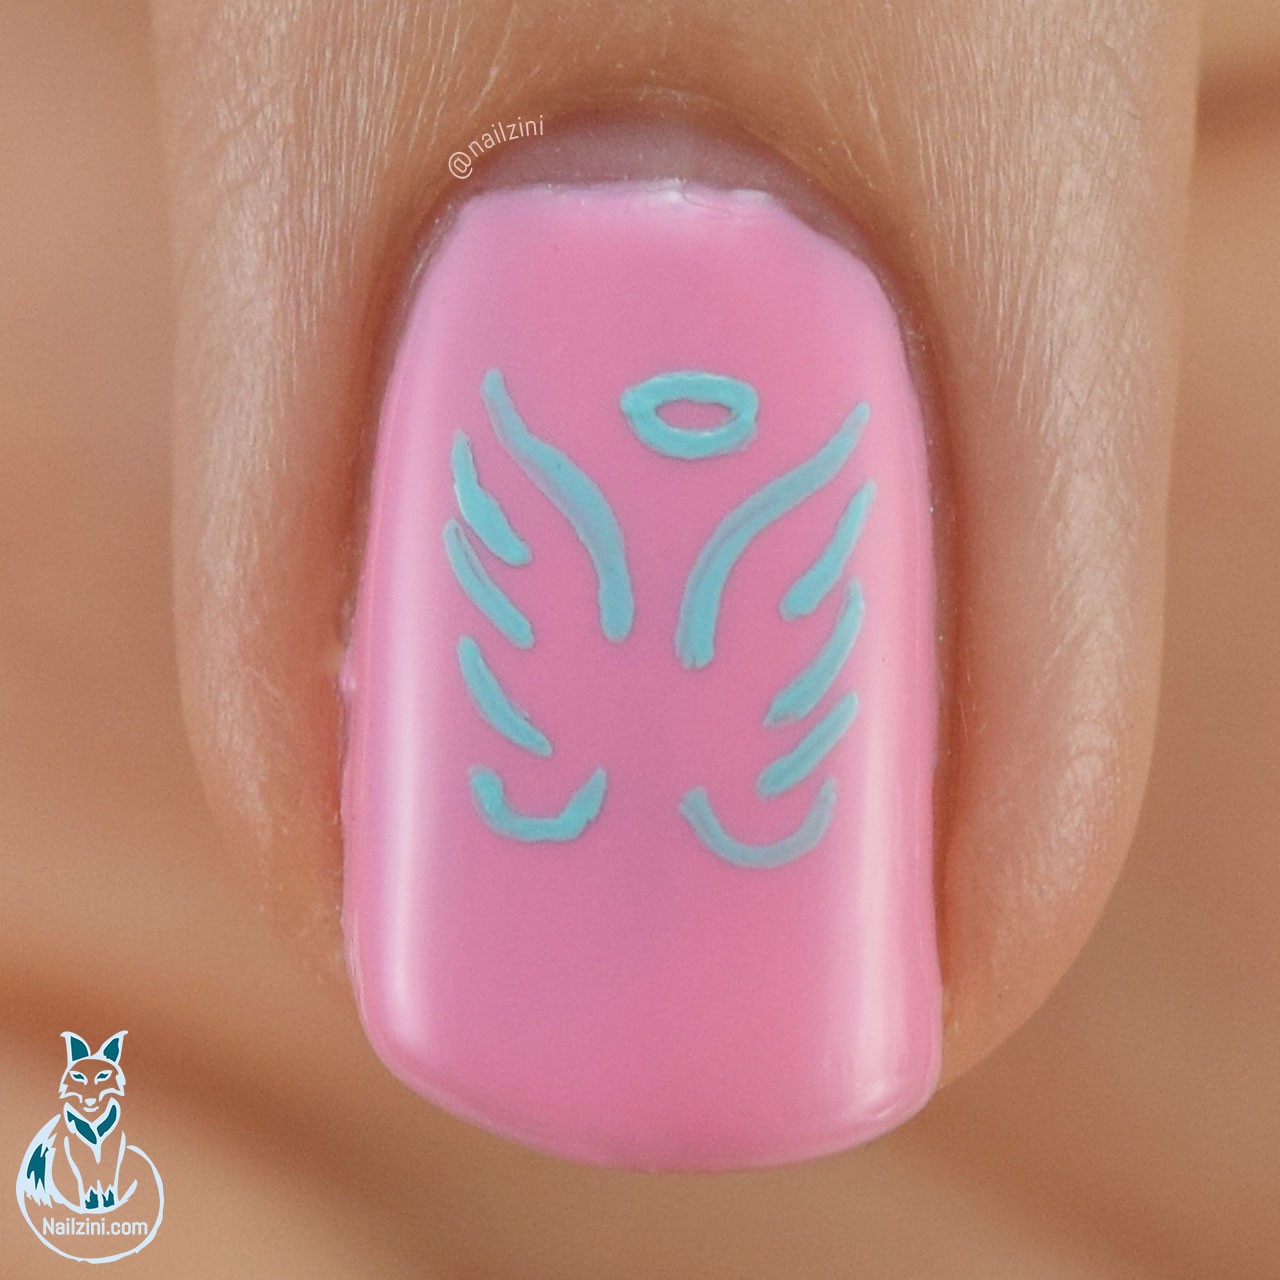 Angel Wings Madam Glam Nailzini